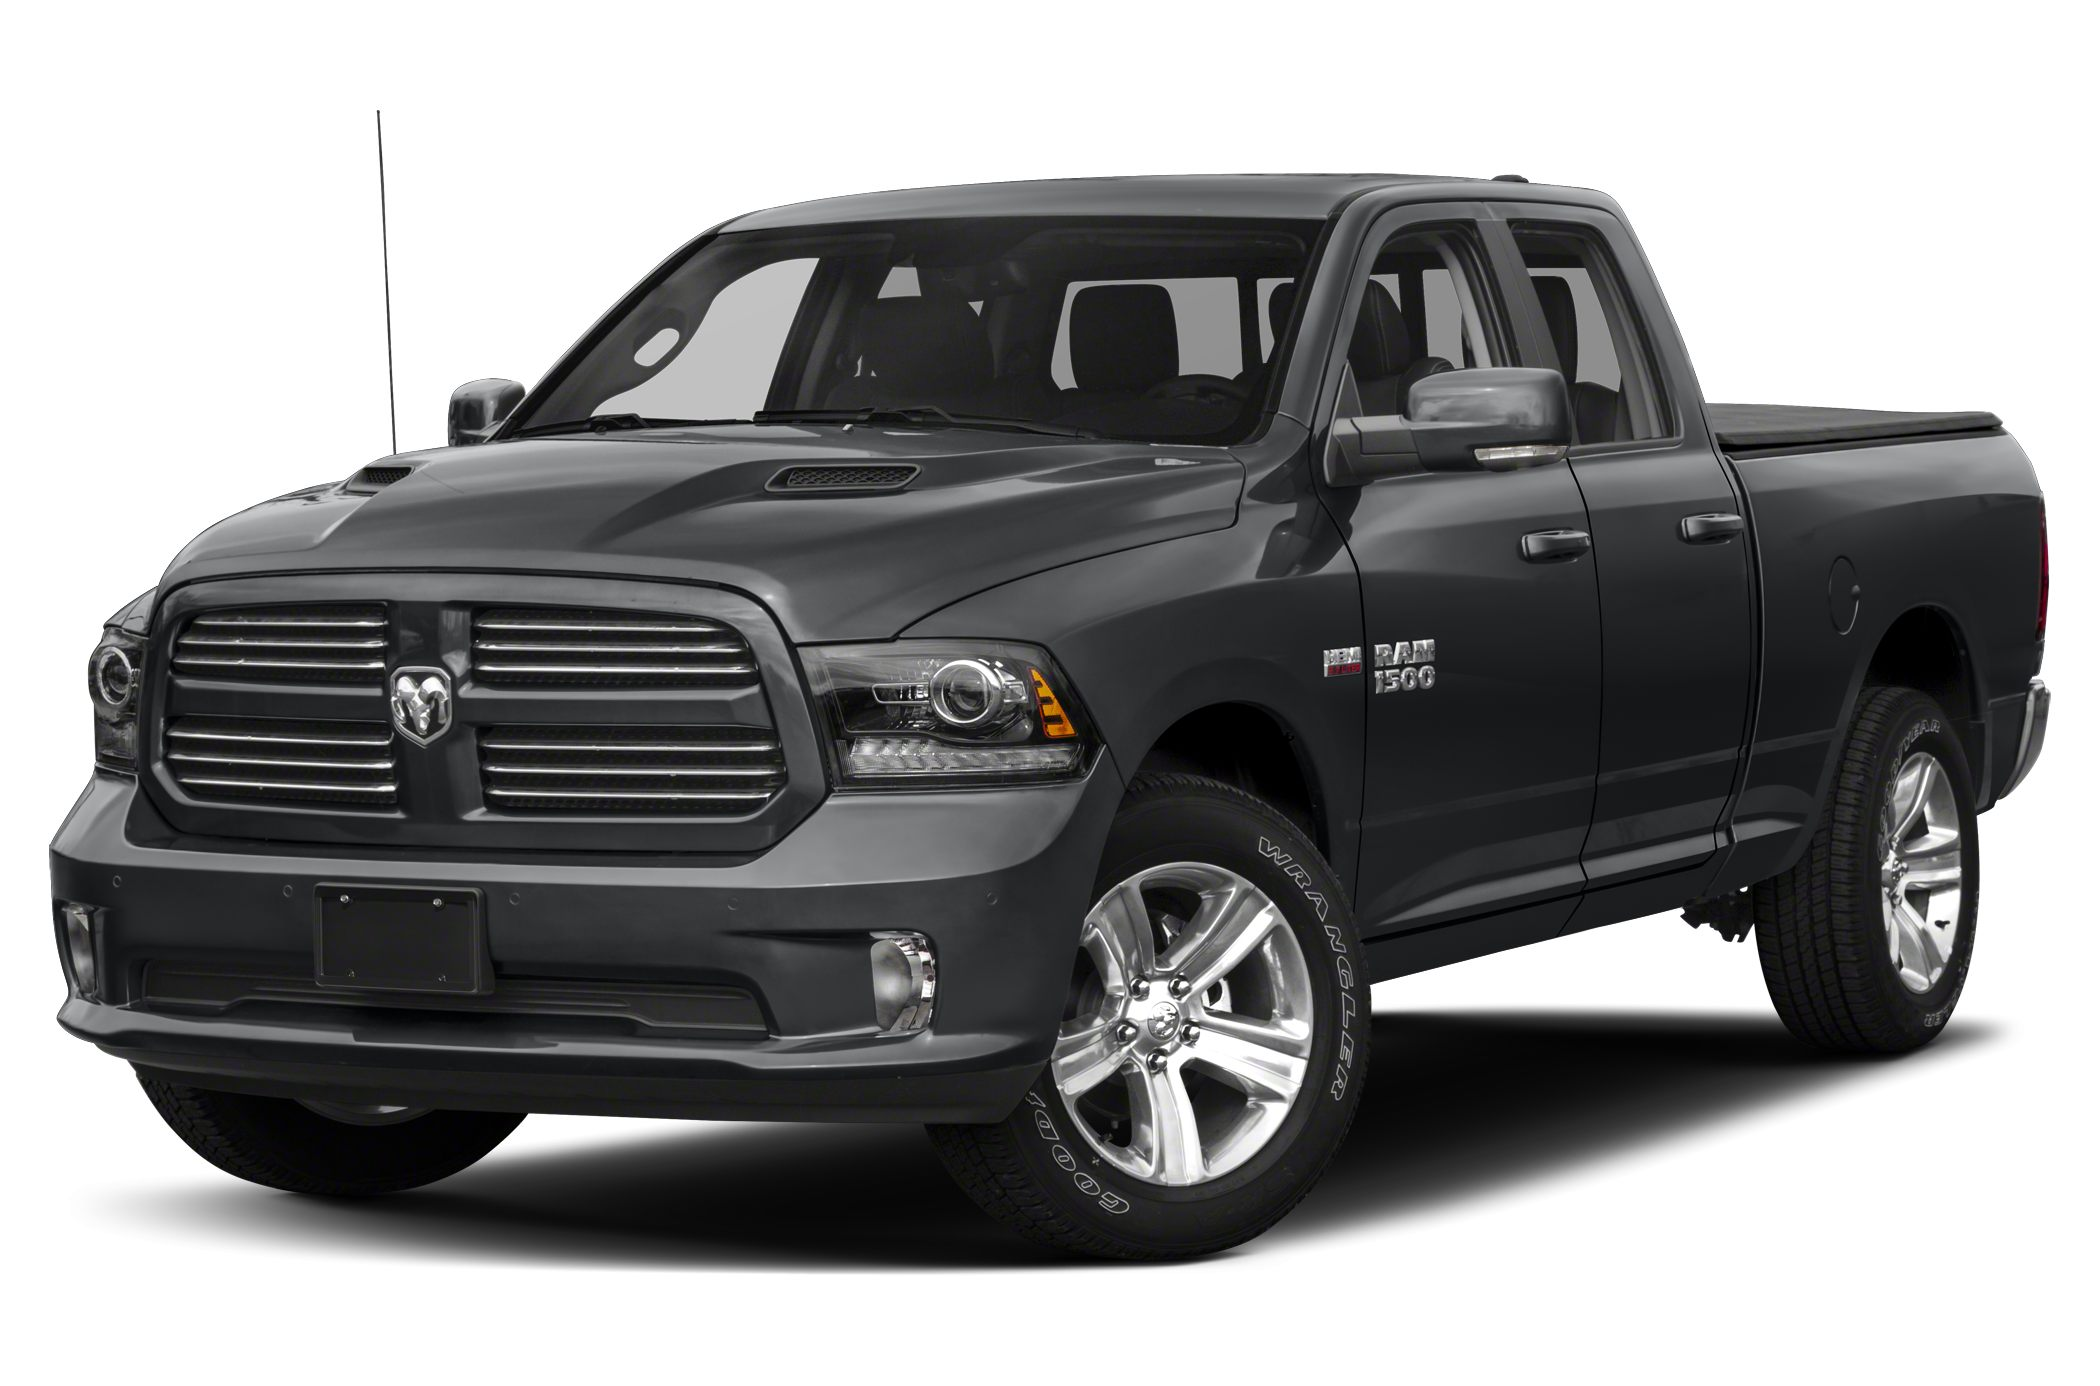 Sport 4x4 Quad Cab 140 In Wb 2018 Ram 1500 Photos